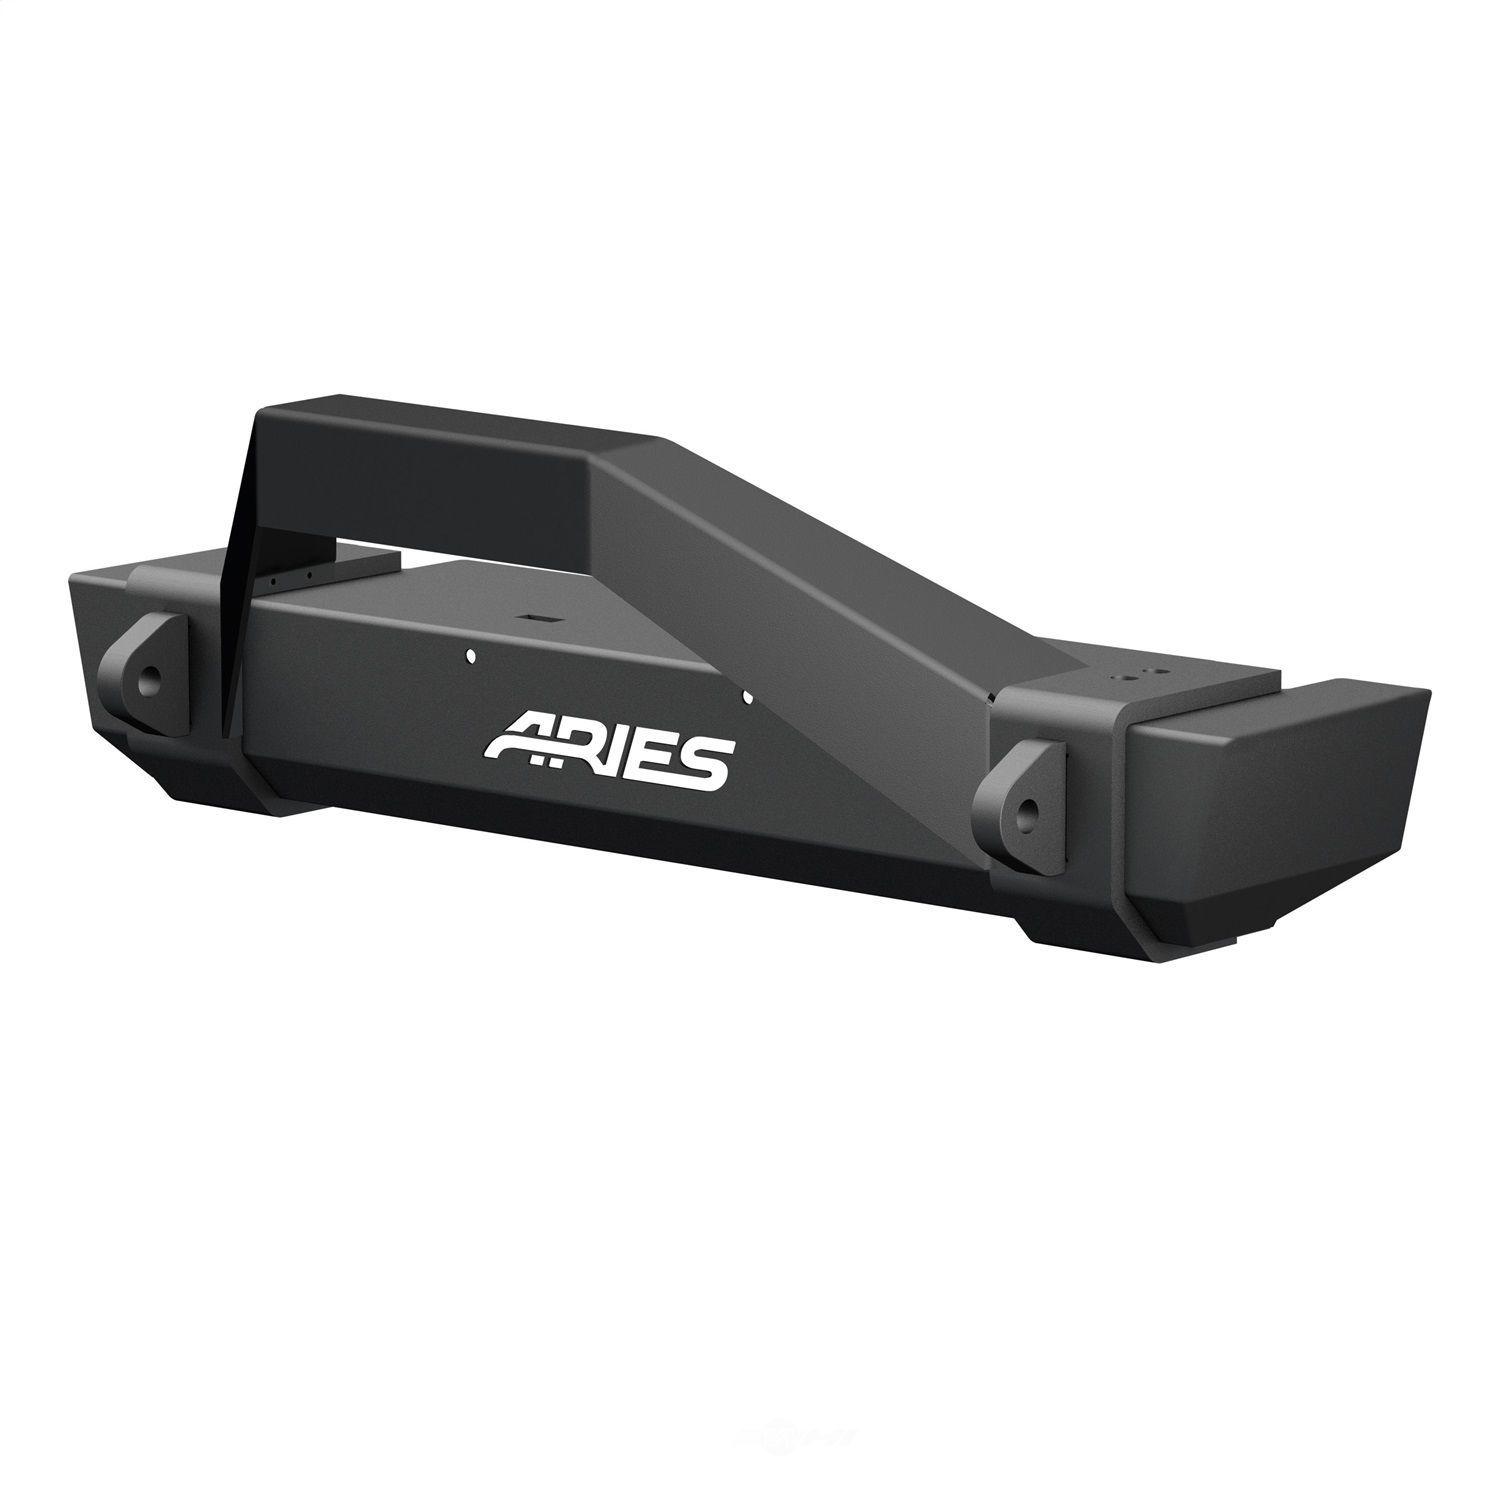 ARIES - Trailcrusher Front Bumper W/brush Guard (Front) - AR2 2186001